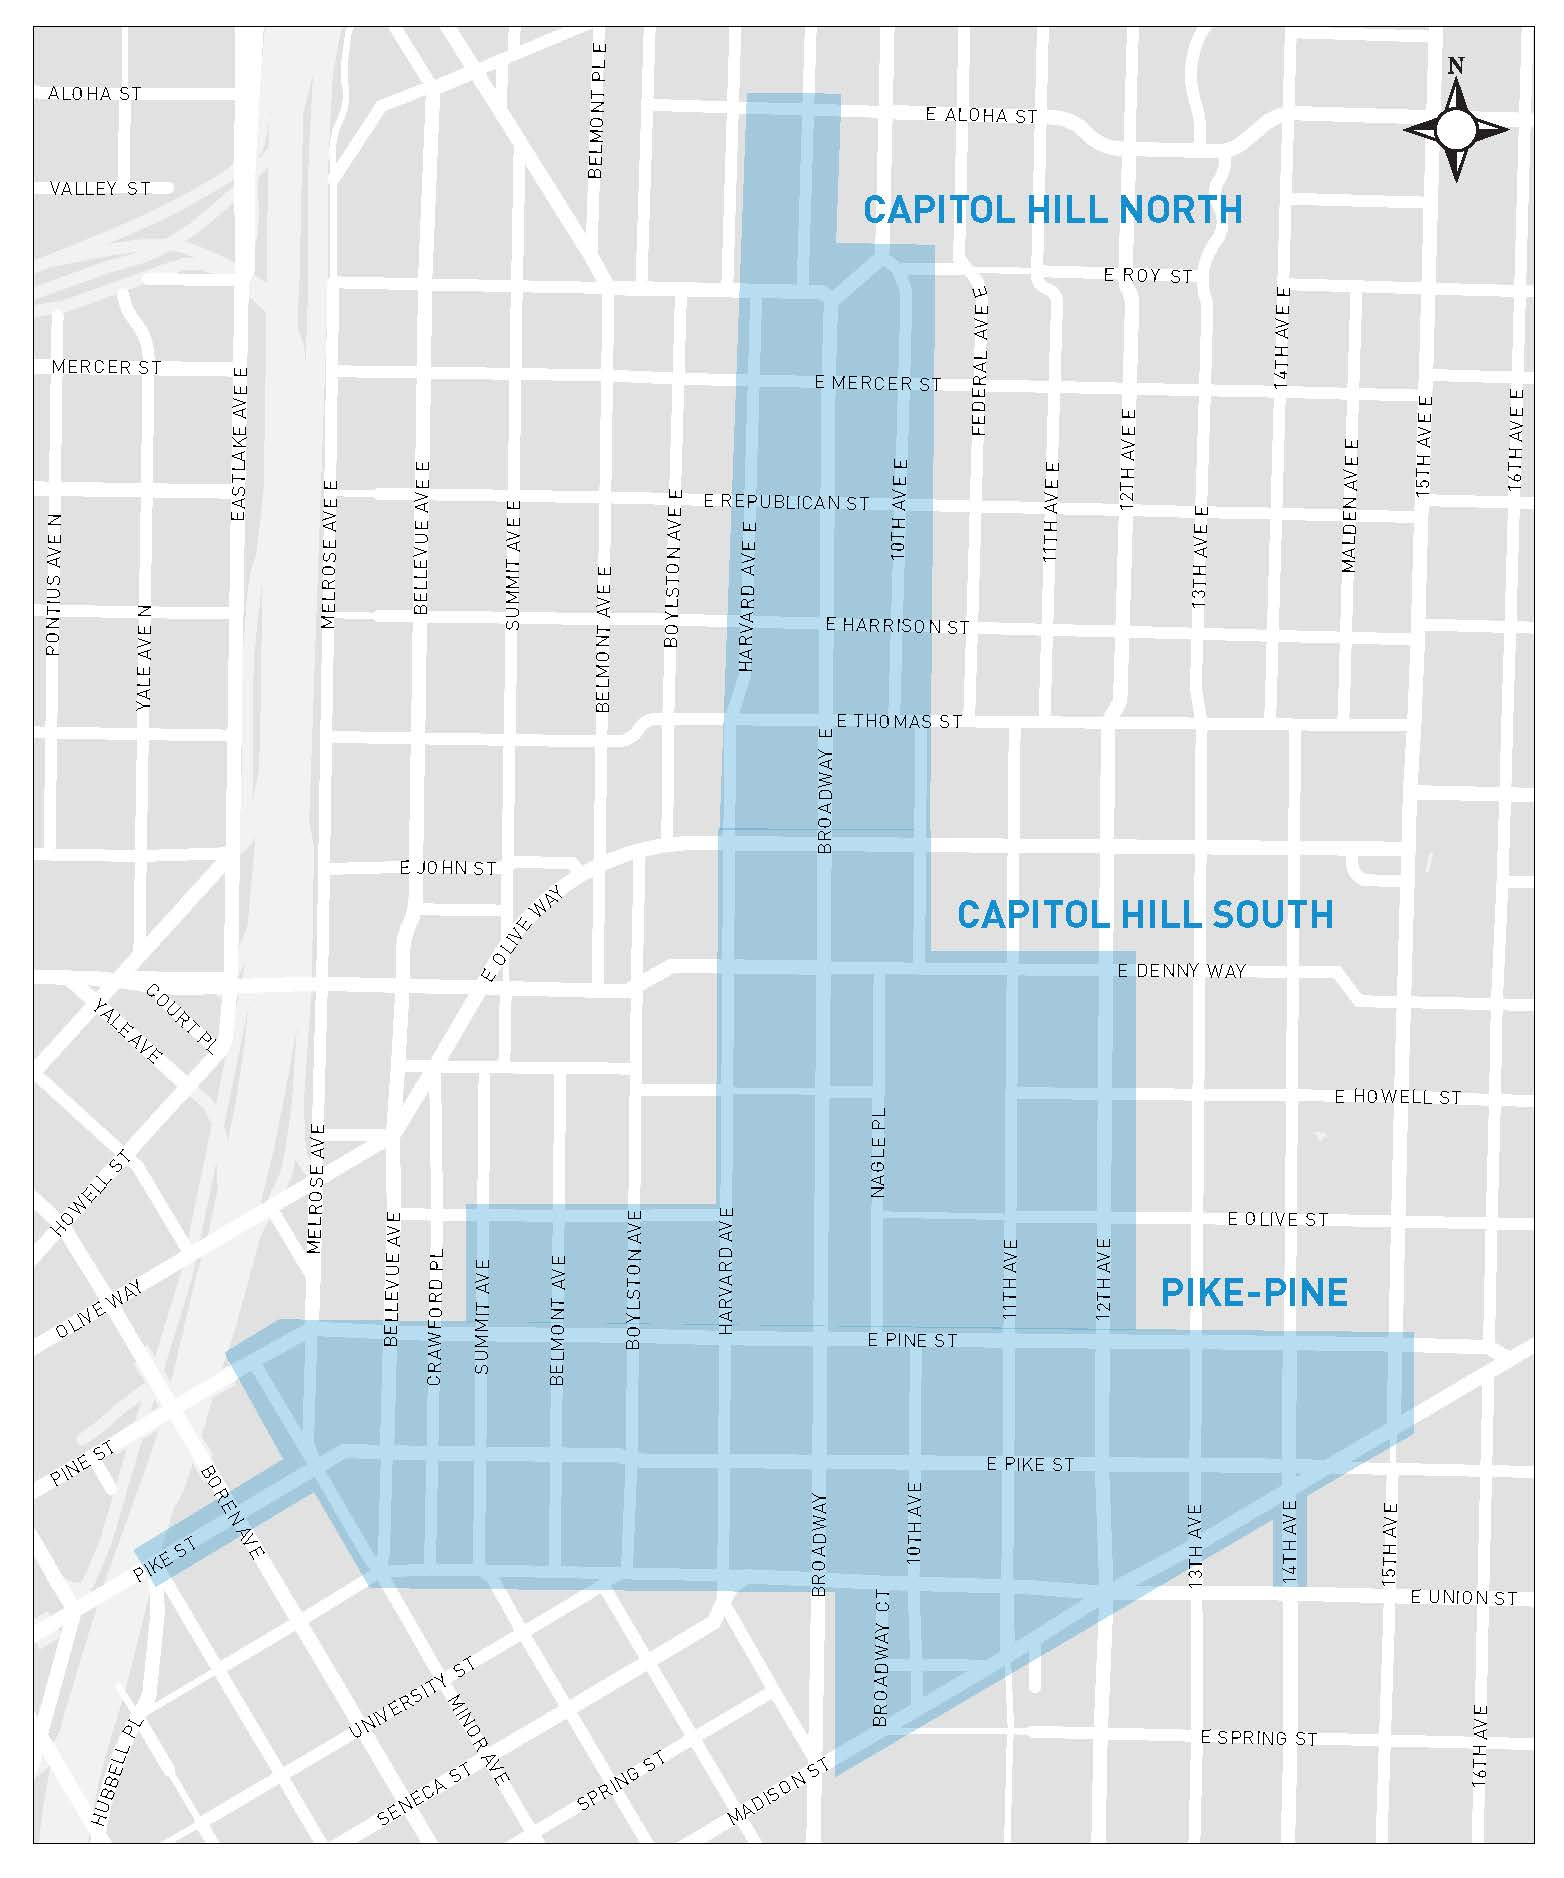 Parking hours will be extended on the streets that have paid parking in the shaded areas shown.